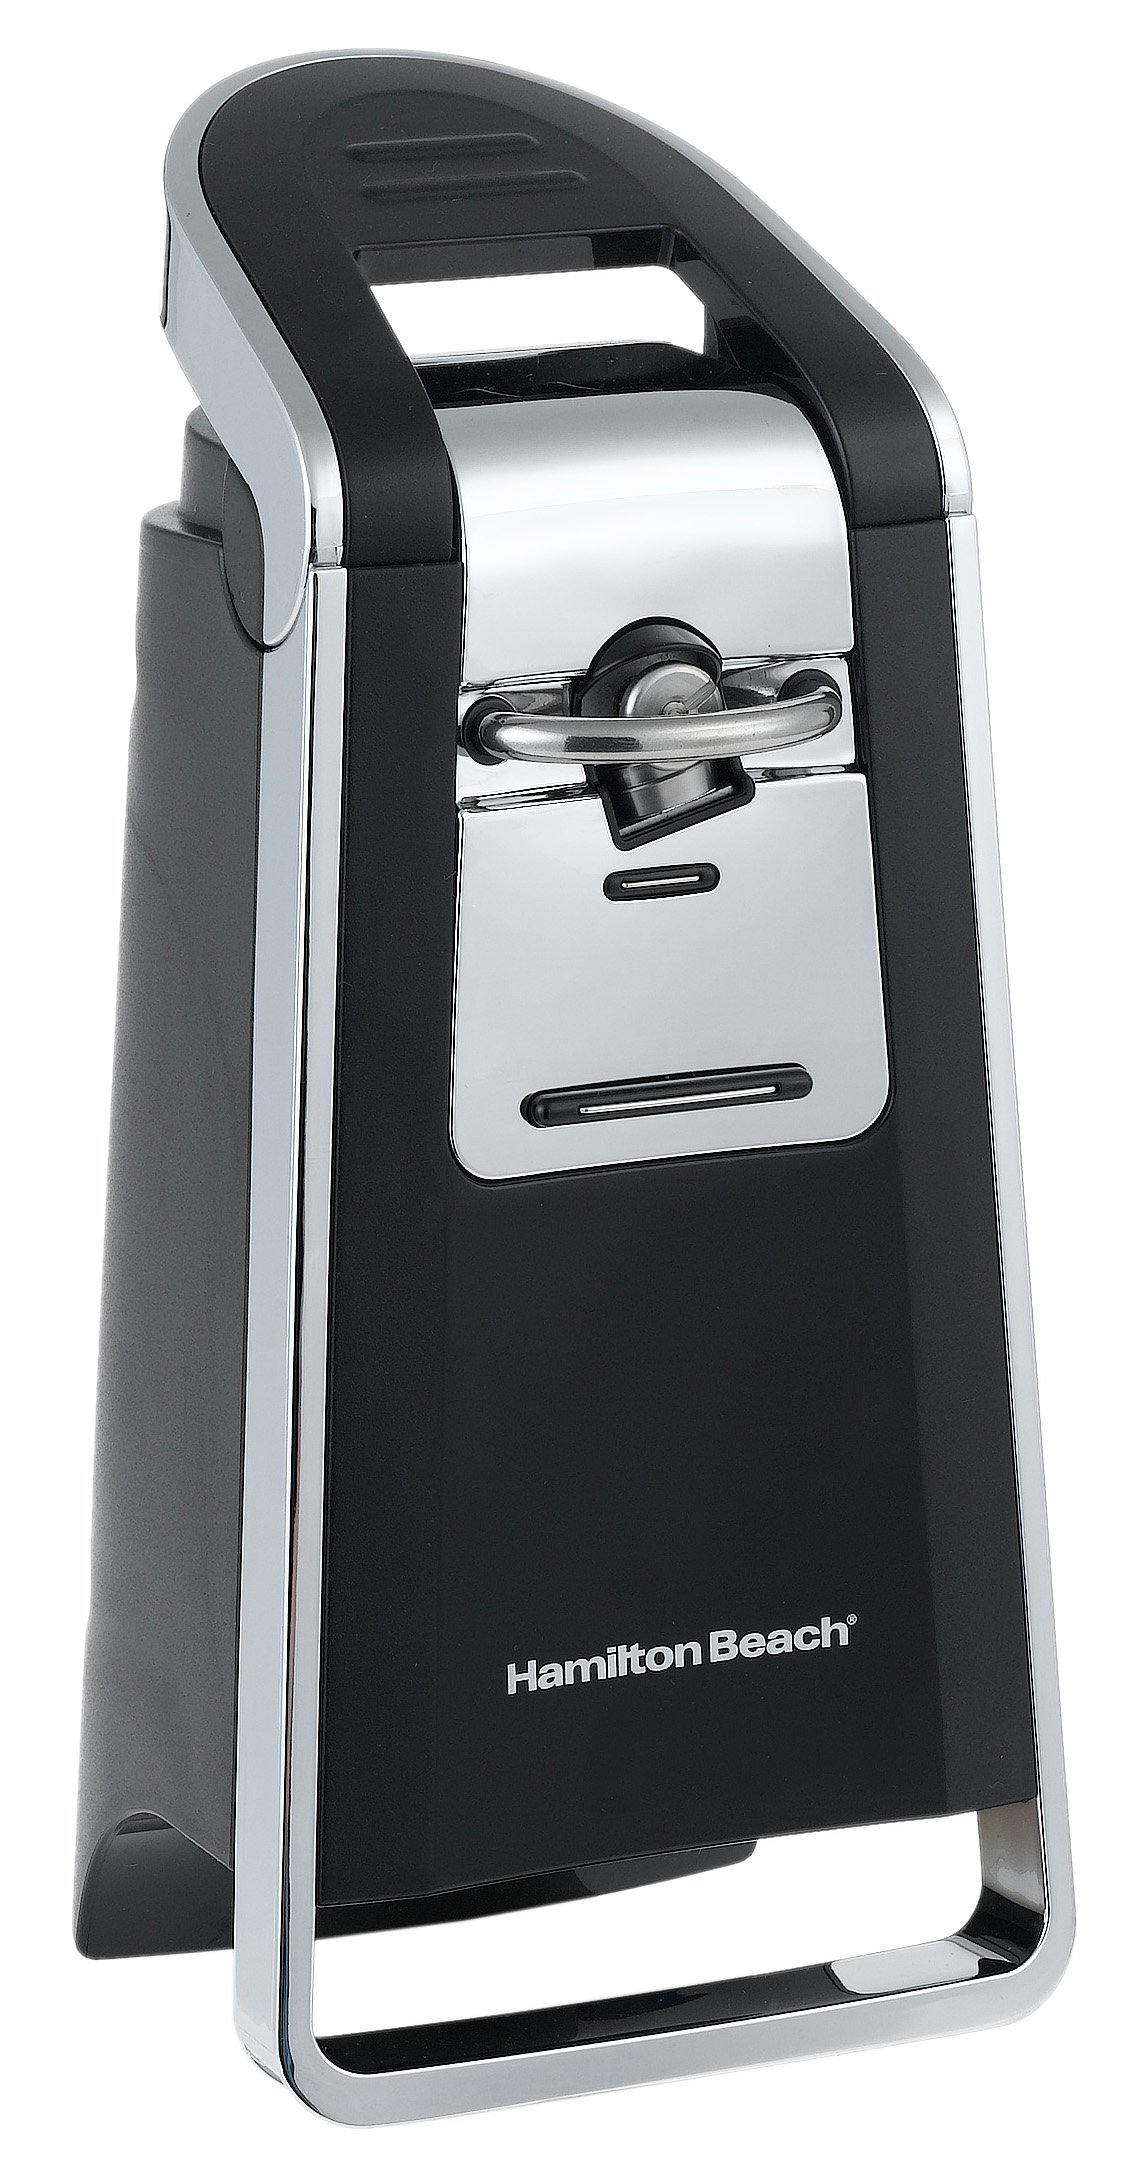 Hamilton Beach 76606Z Smooth Touch Can Opener, Black and Chrome (Discontinued) by Hamilton Beach